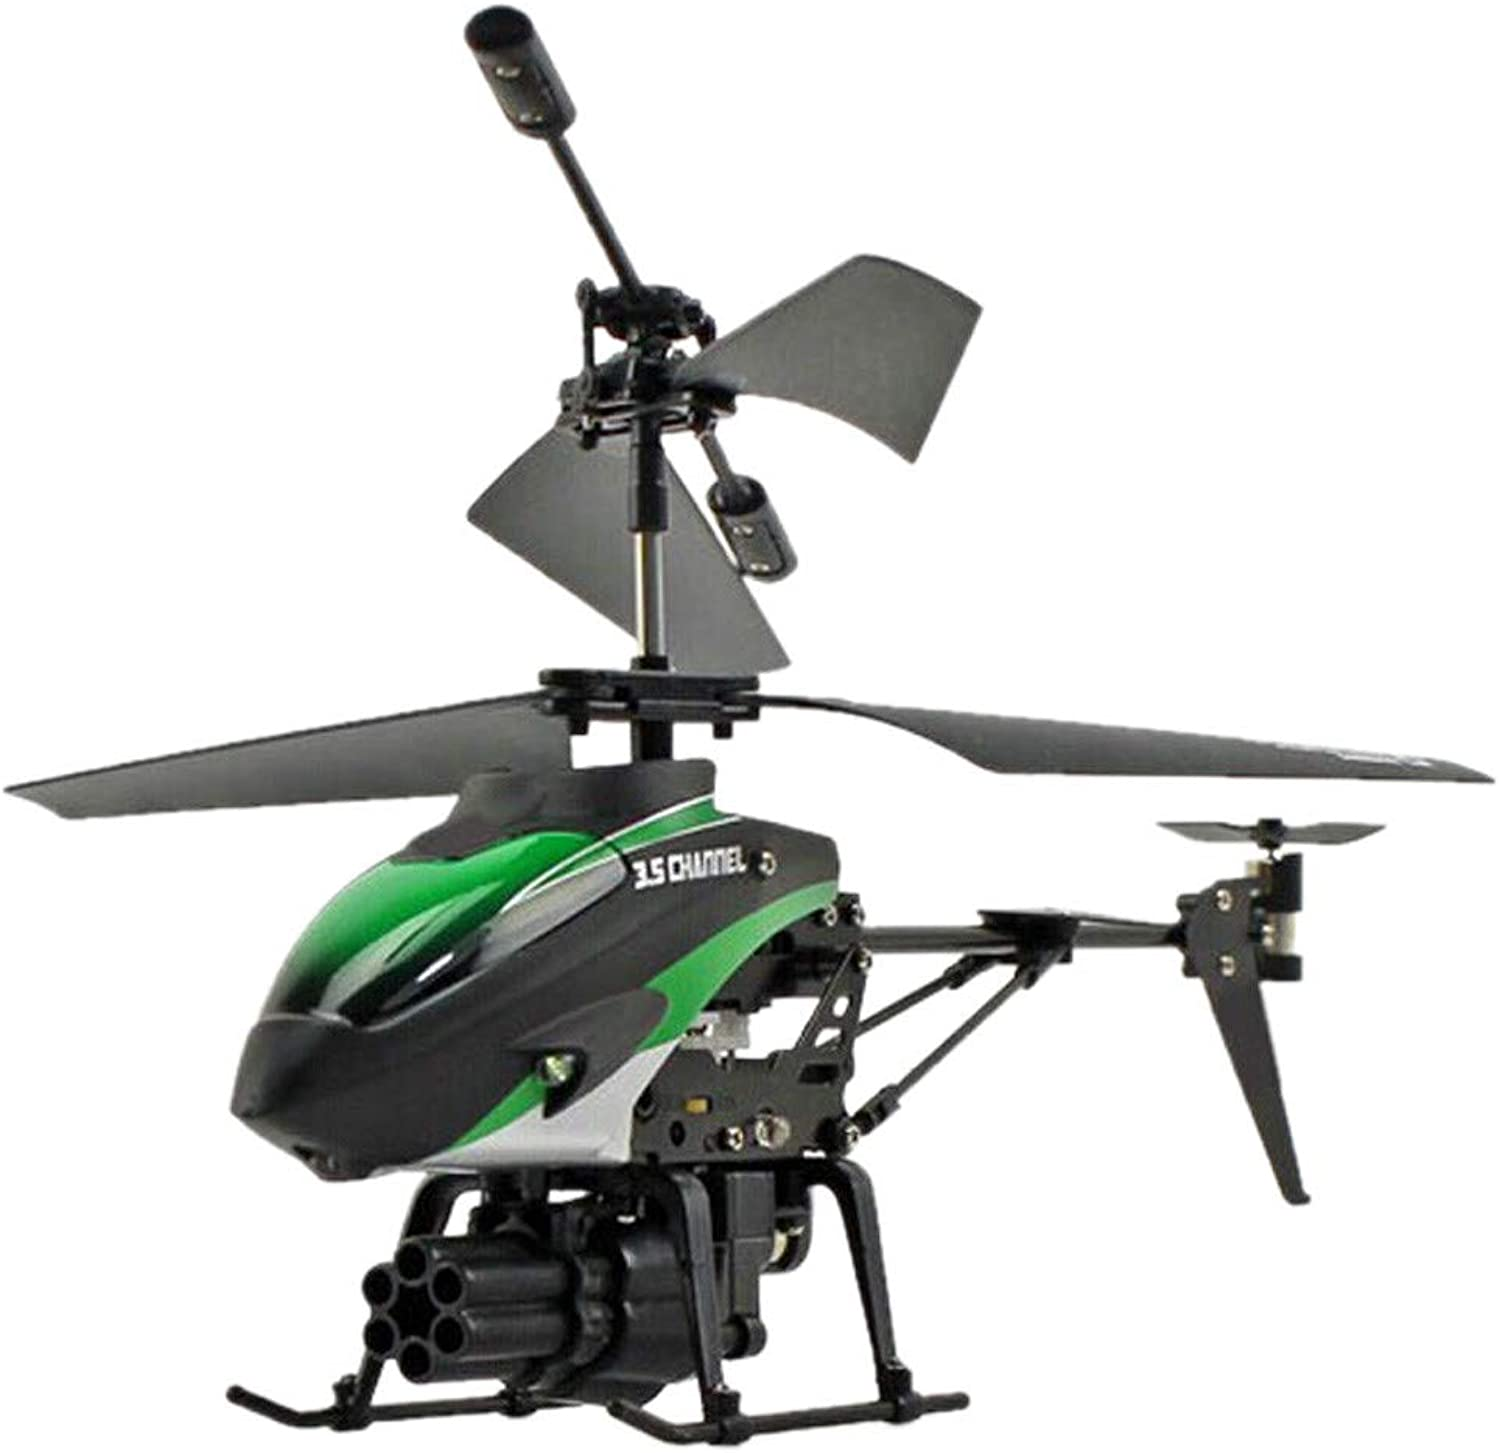 Fullfun 3.5CH Mini rc Quadcopter Remote Control Missile Aircraft Airplanes Model Toys